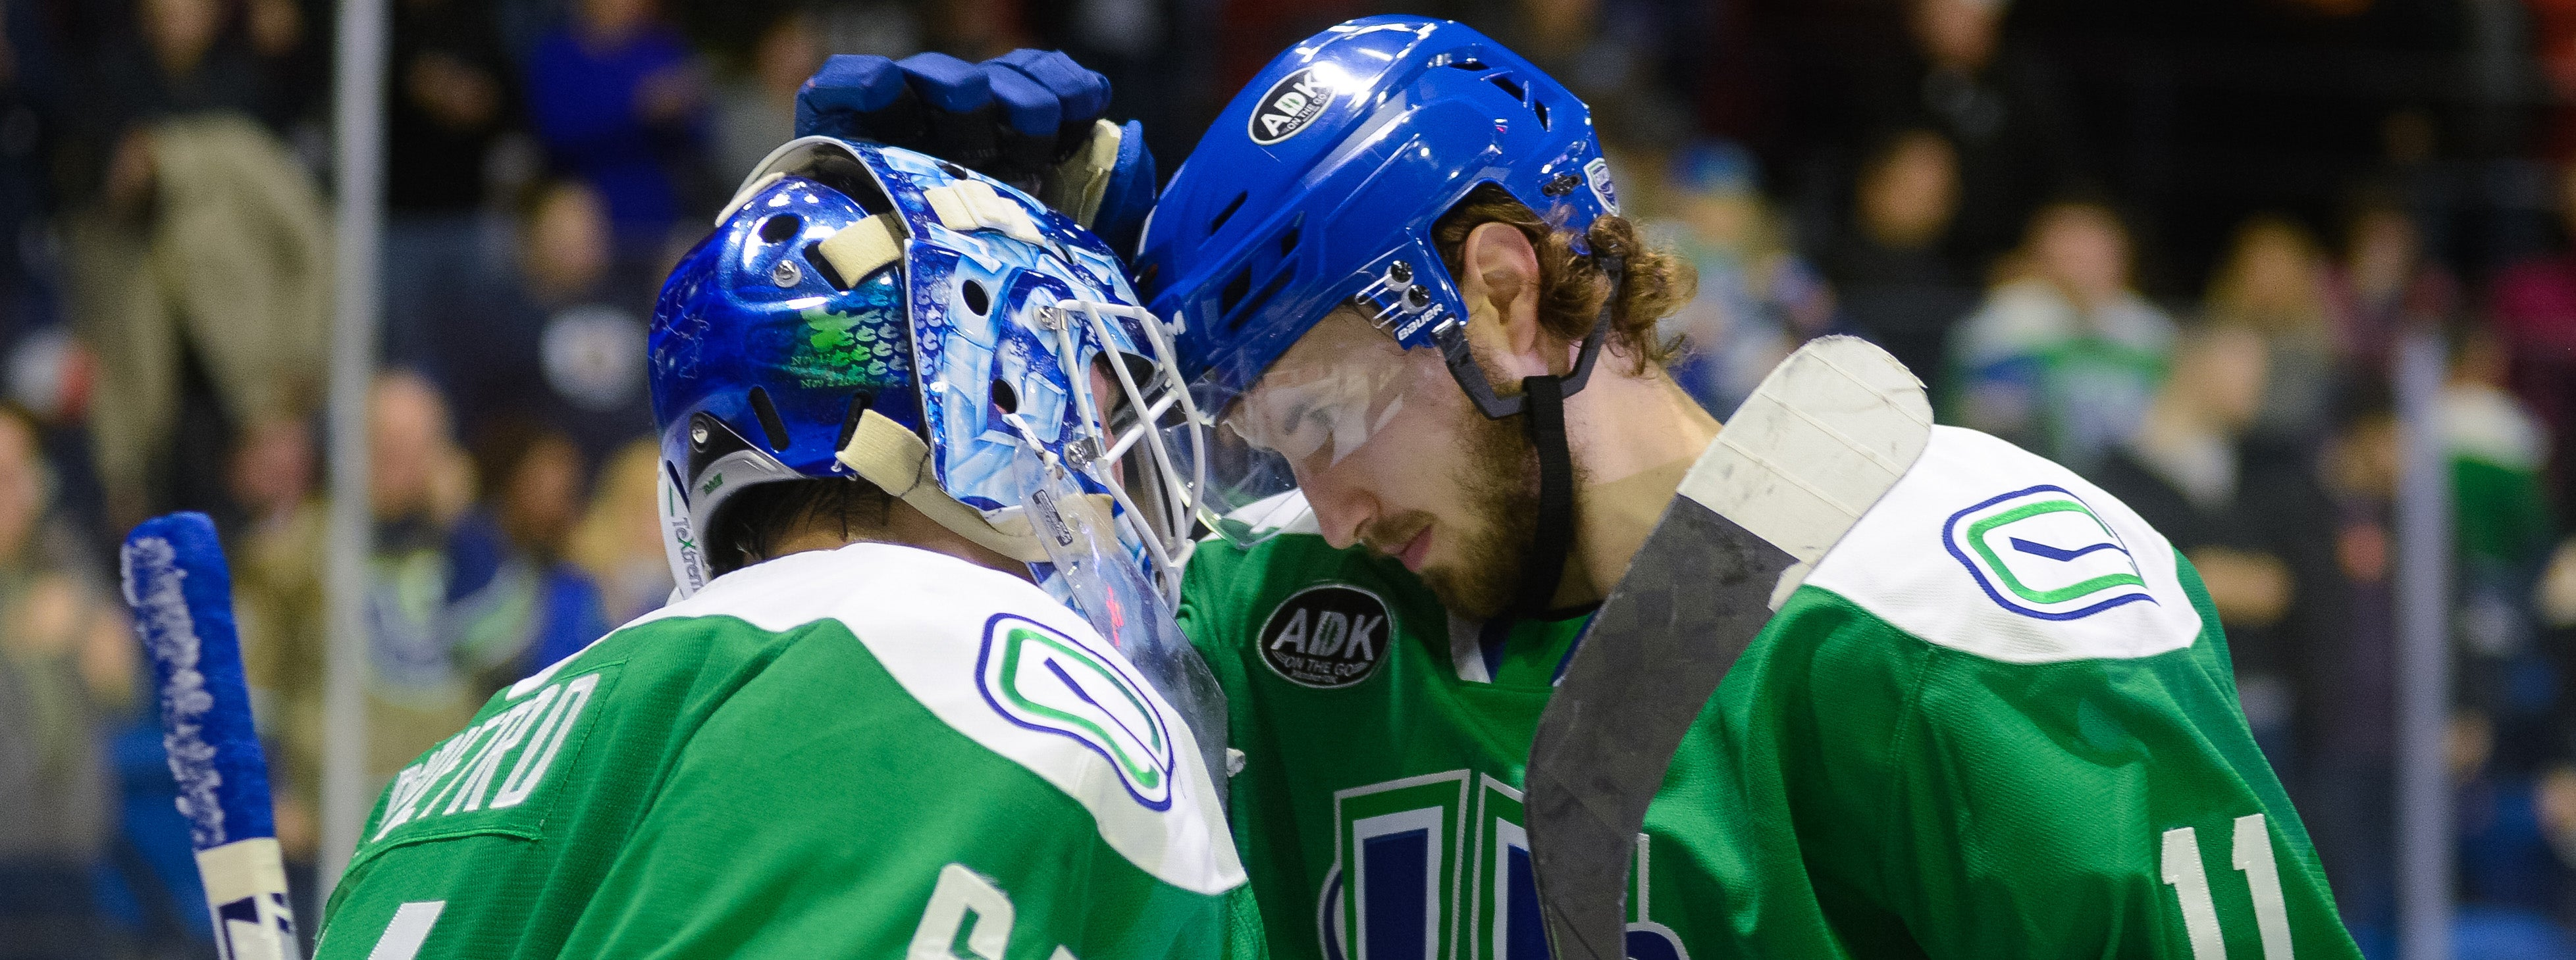 DIPIETRO, POWER PLAY PUSH COMETS PAST ROCKET